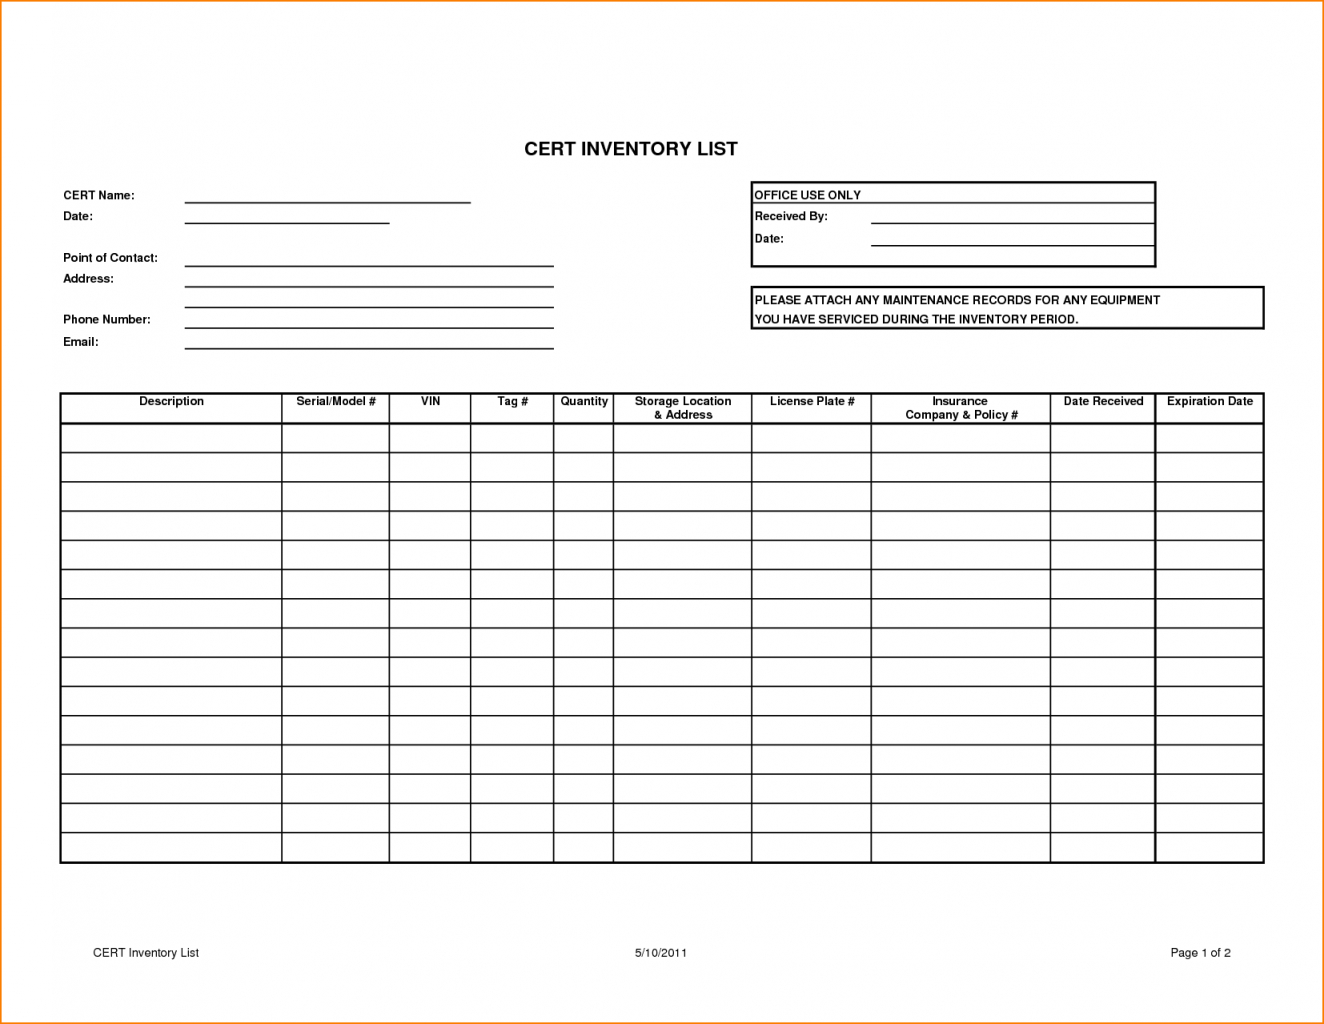 Free Inventory Management Software In Excel Inventory Spreadsheet Template In Stock Management Software In Excel Free Download Inventory Tracking